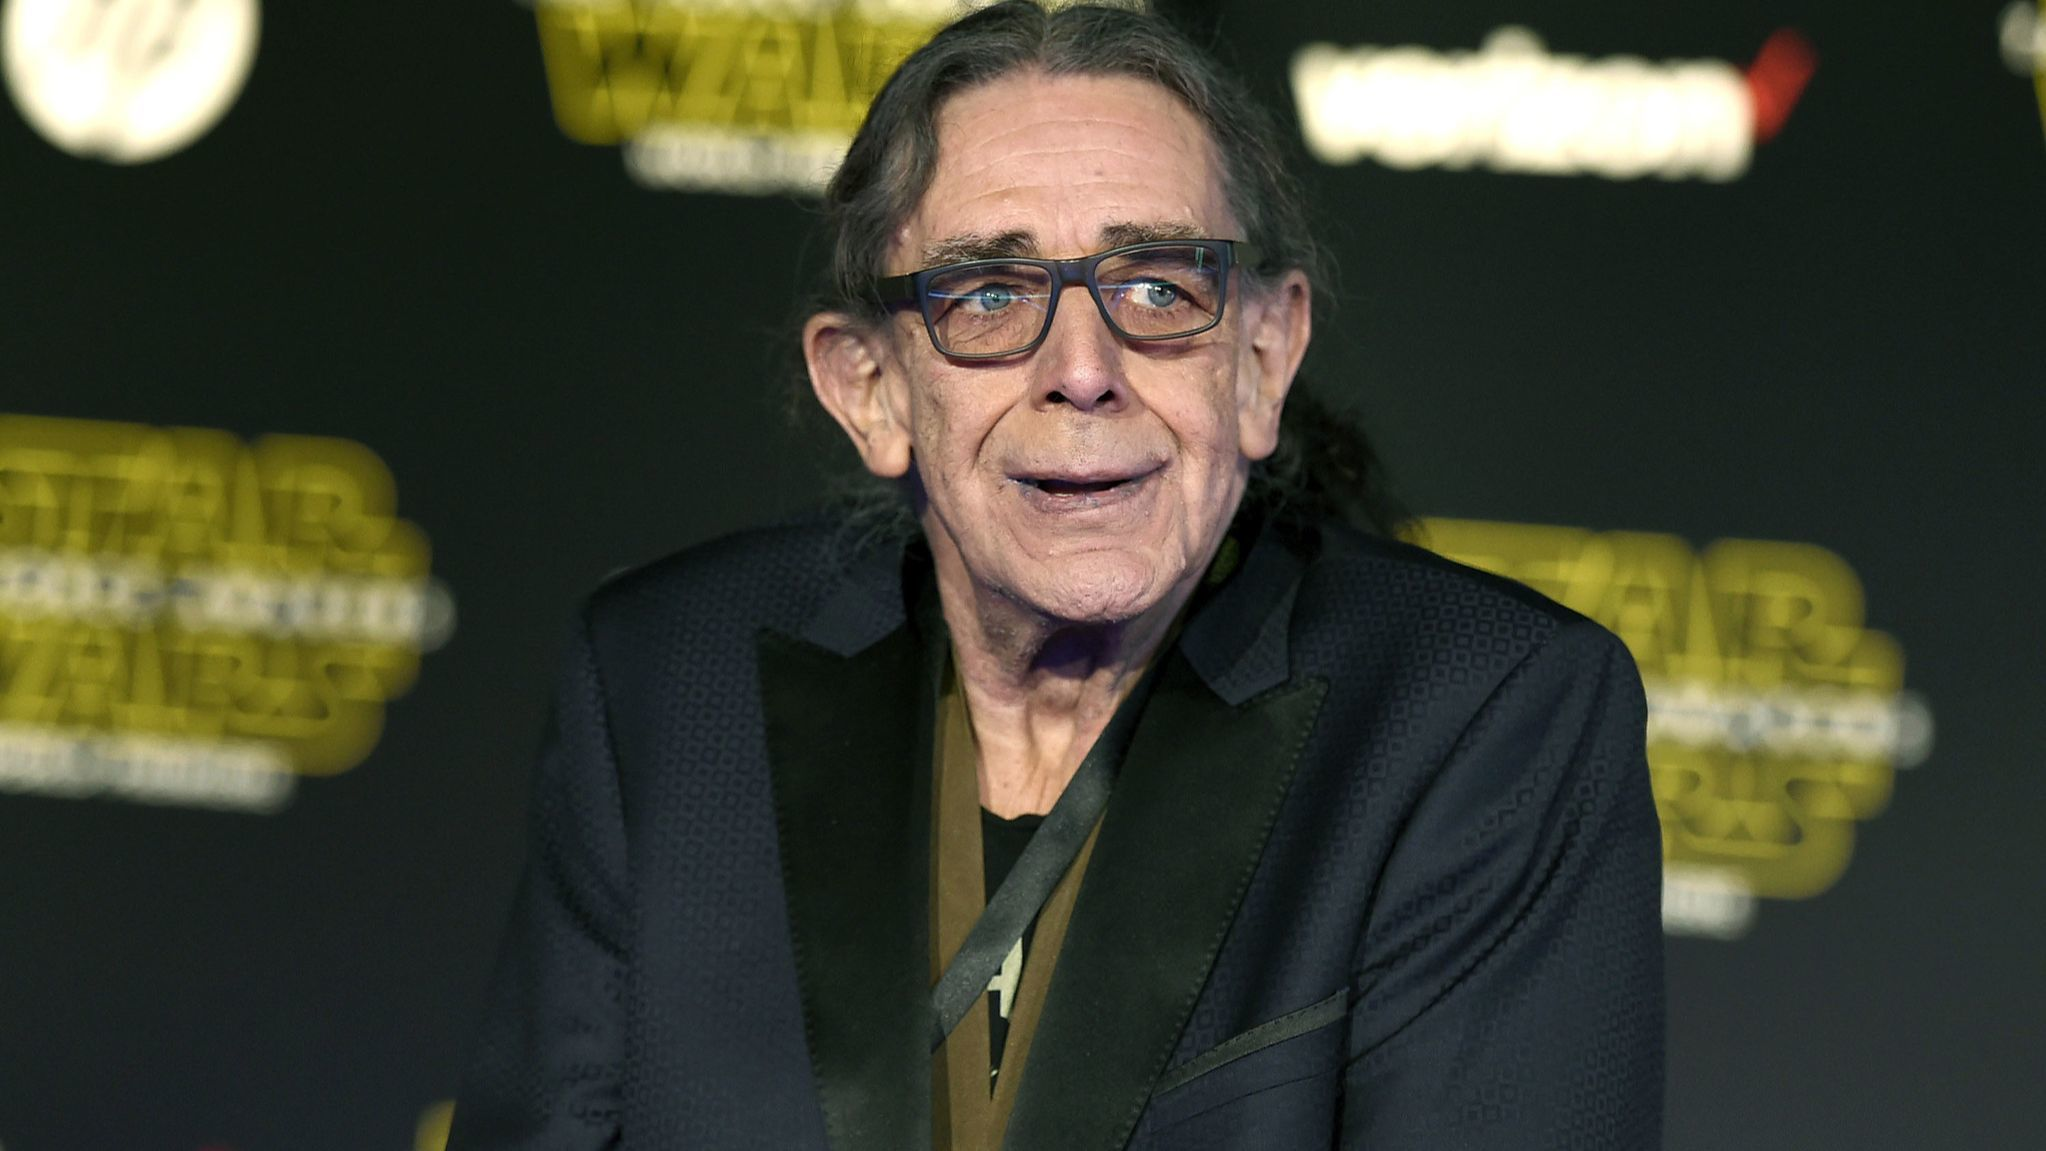 Peter Mayhew, the towering Chewbacca in the 'Star Wars' films, dies at 74